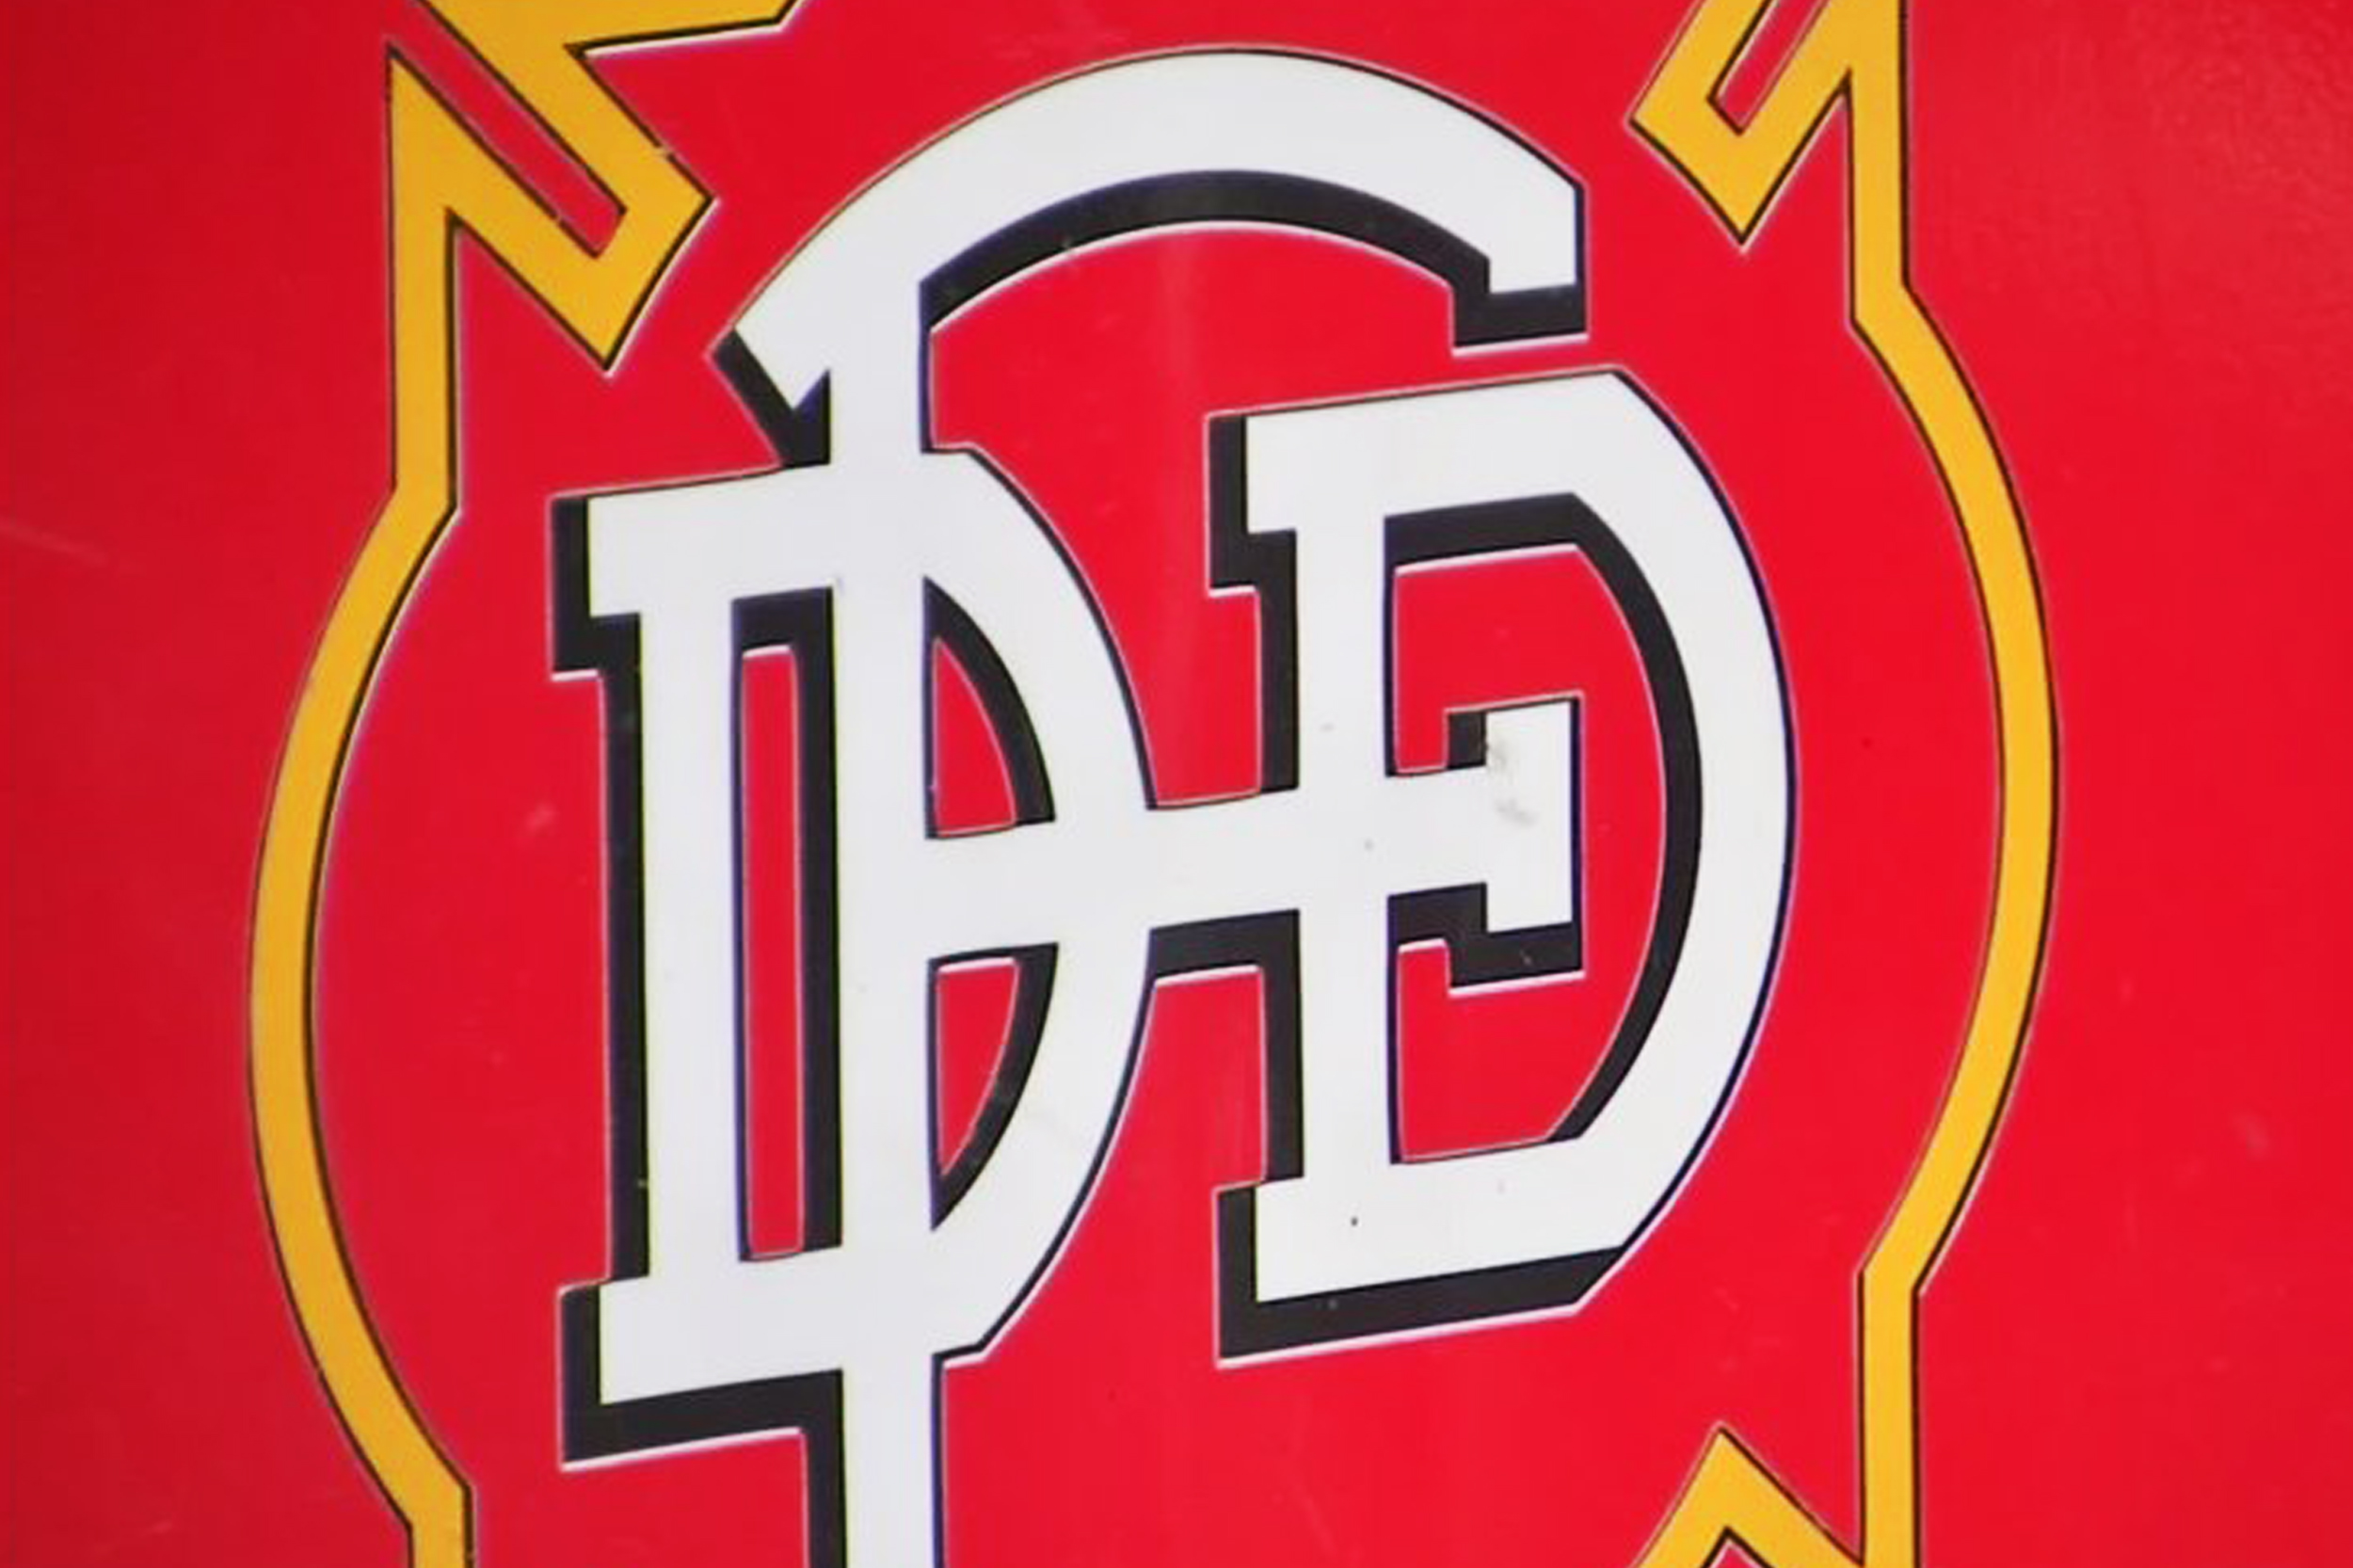 Dallas firefighter arrested, accused of faking Covid diagnosis